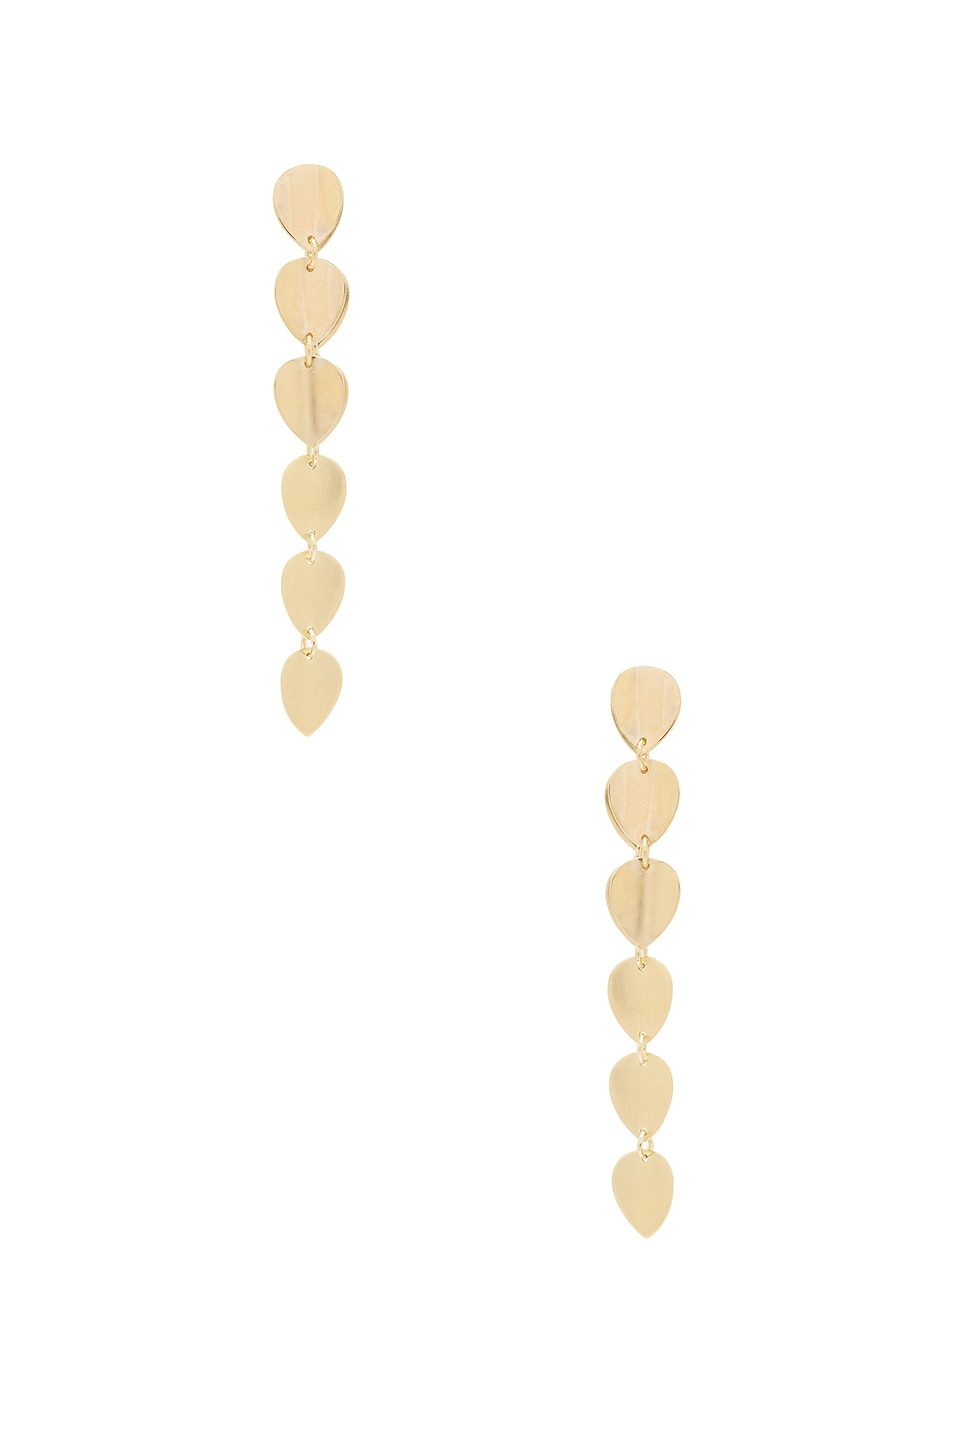 Elizabeth and James Santorini Earrings in Yellow Gold